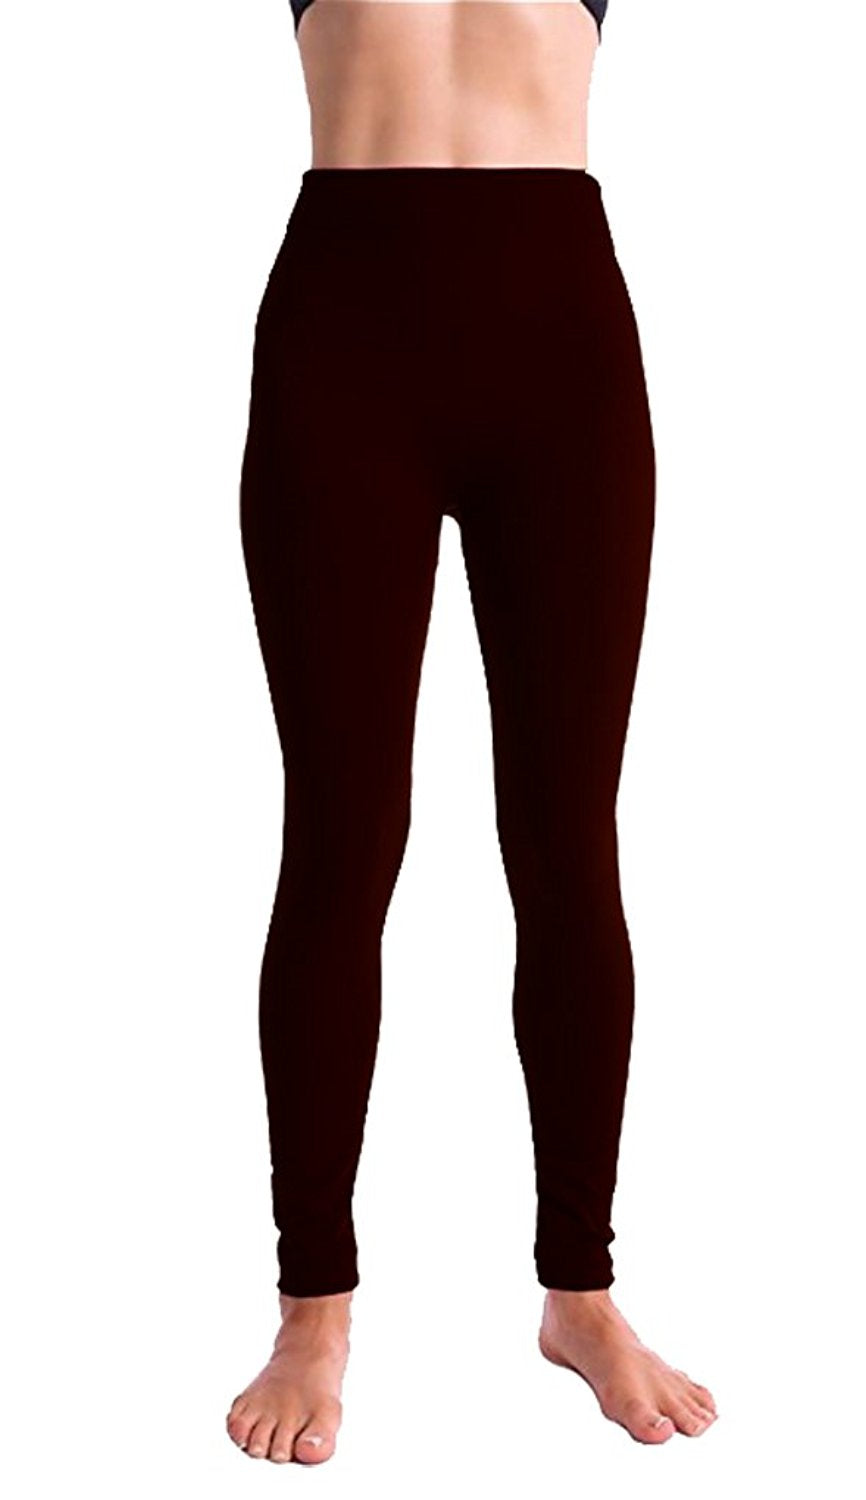 Women's Fleece Lined Leggings - Home Goods Galore